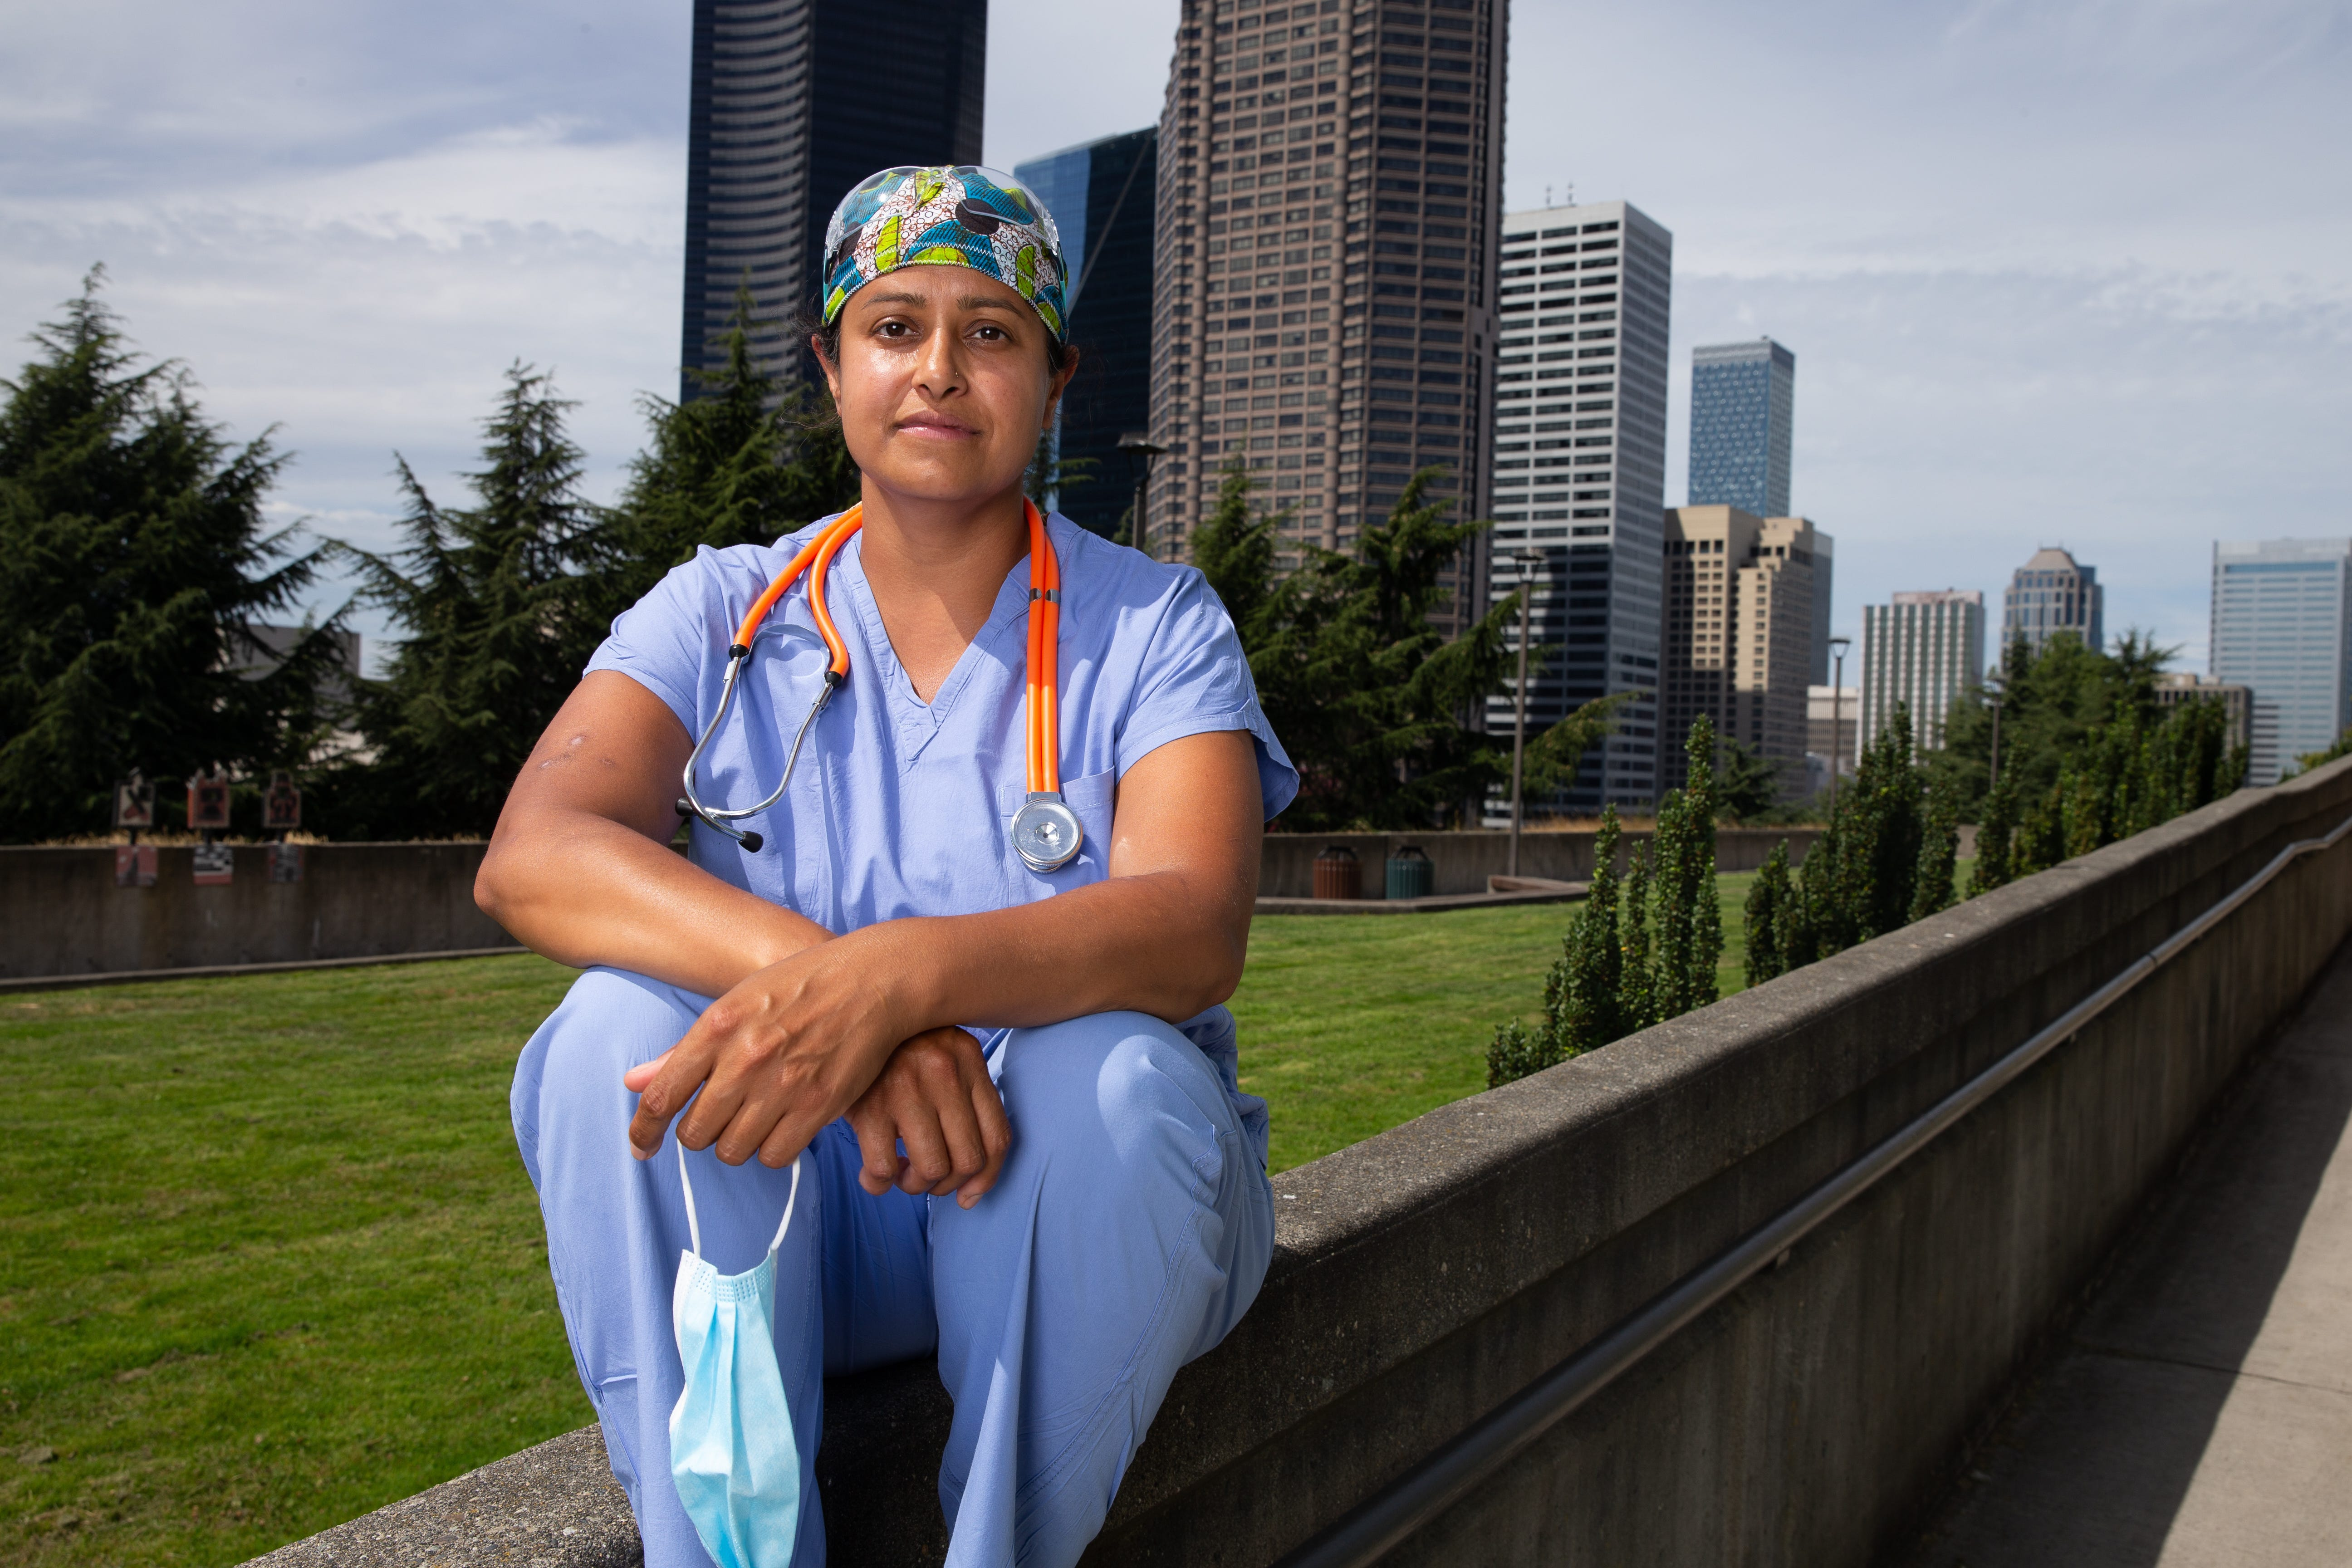 At the center of the first major U.S. outbreak of the coronavirus, Seattle, Dr. Sachita Shah said her hospital struggled to keep up with changing CDC testing guidance.